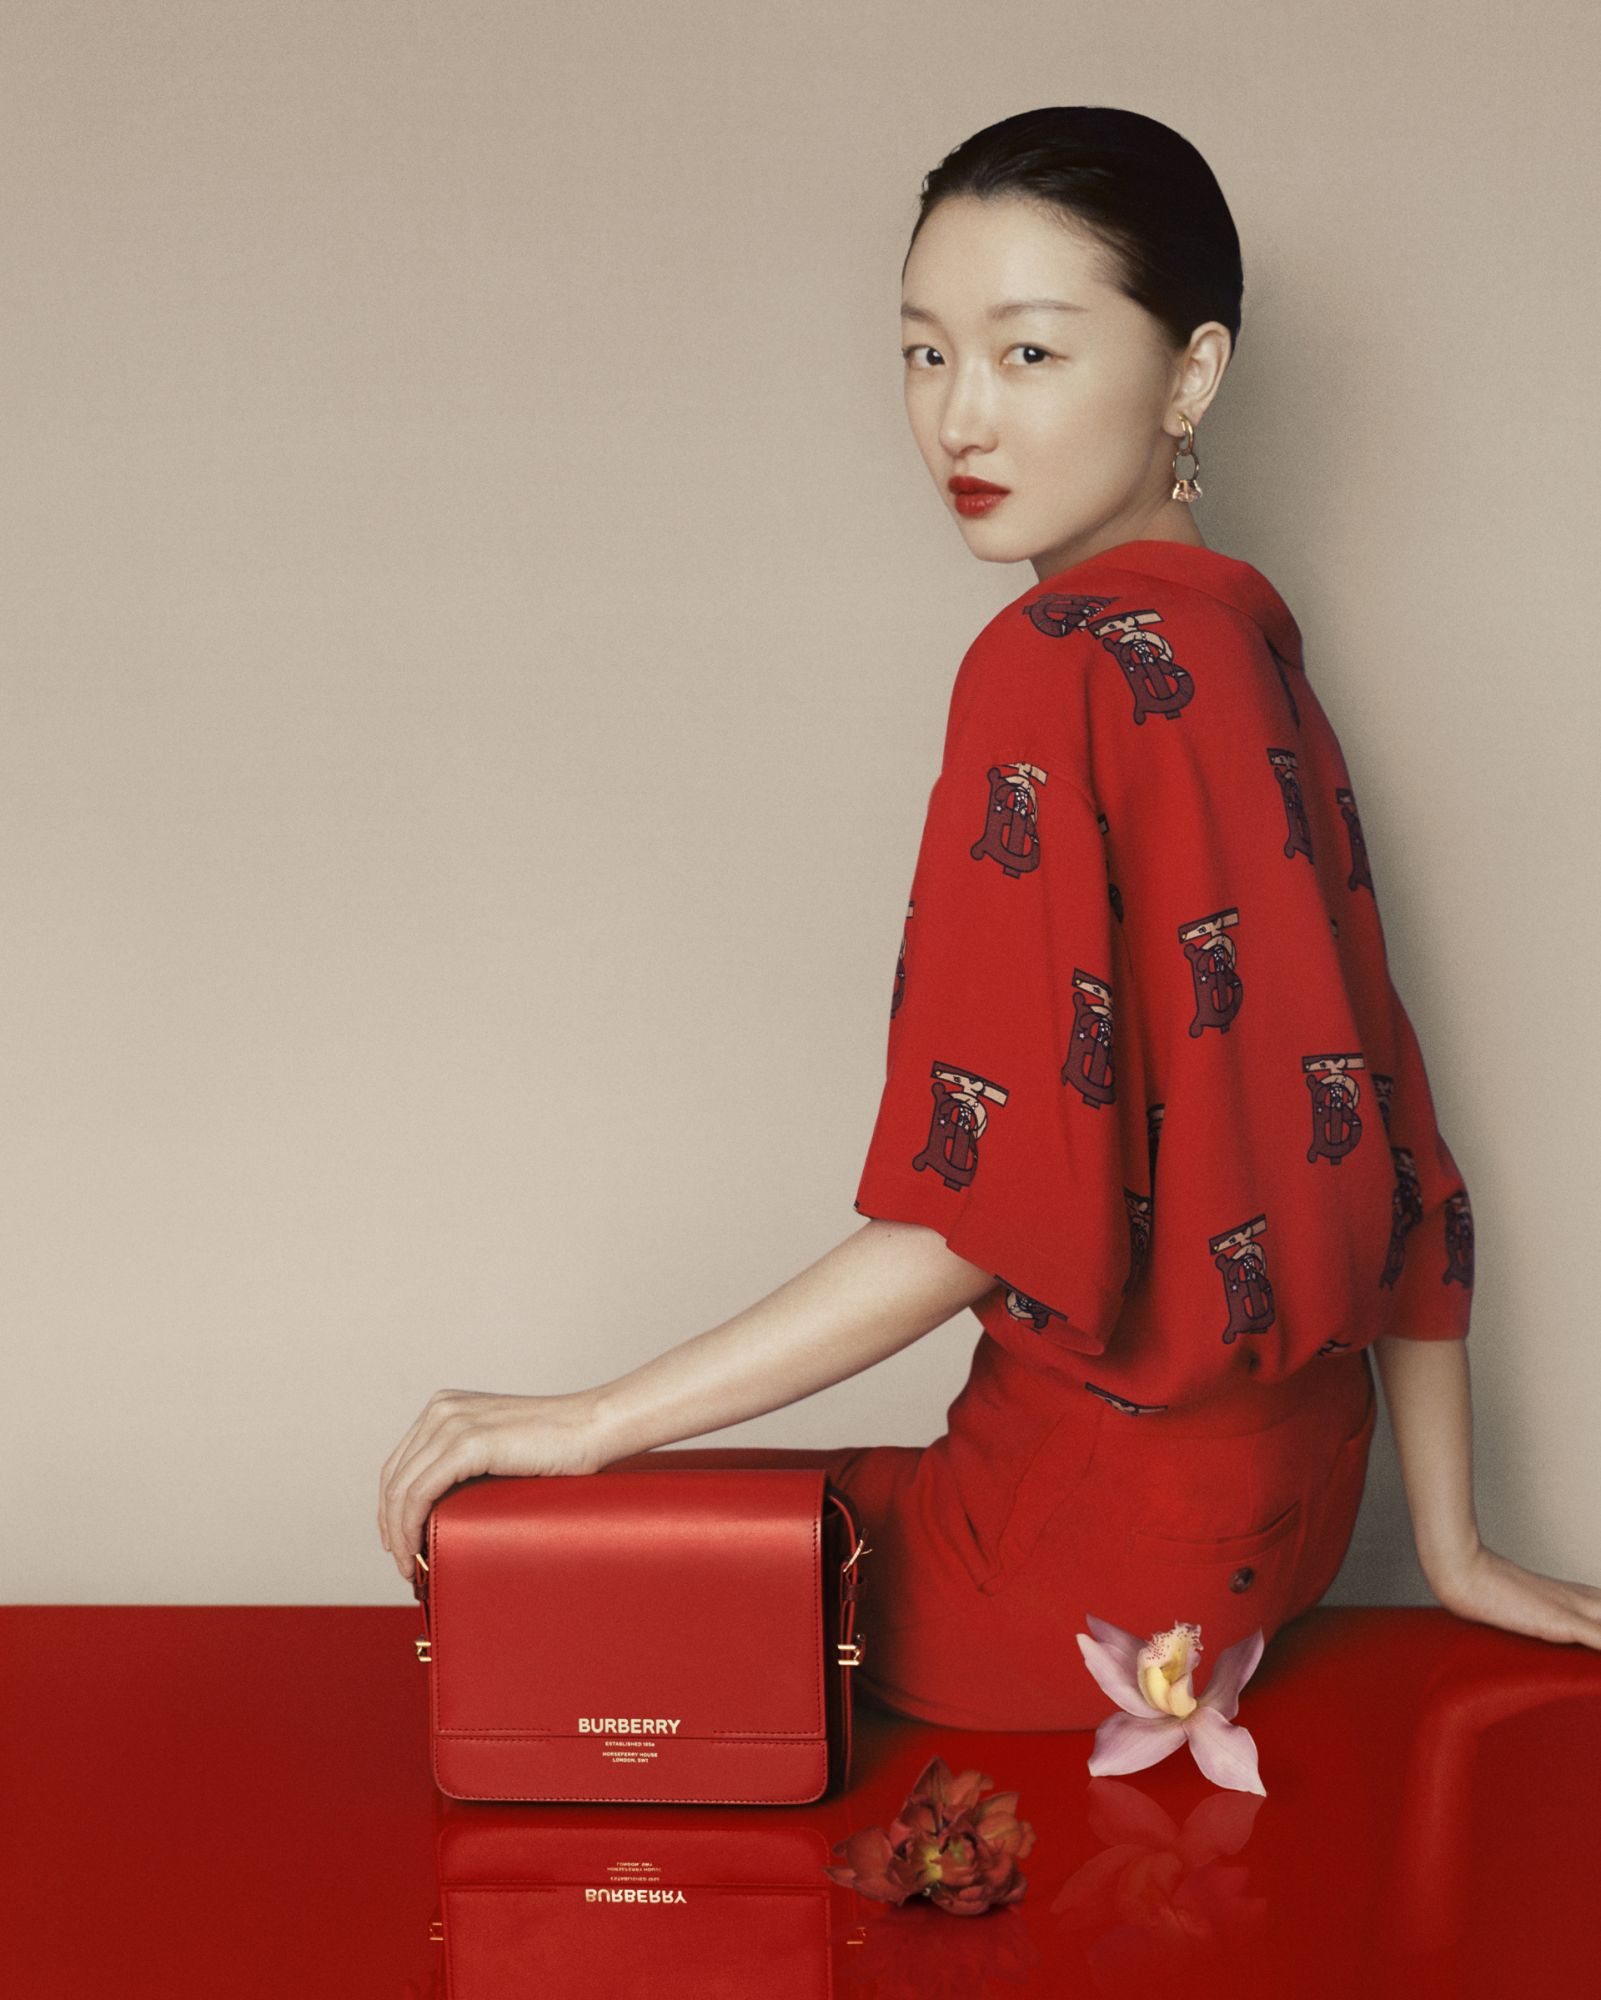 Burberry Chinese New Year 2020 campaign  © Courtesy of Burberry / Leslie Zhang